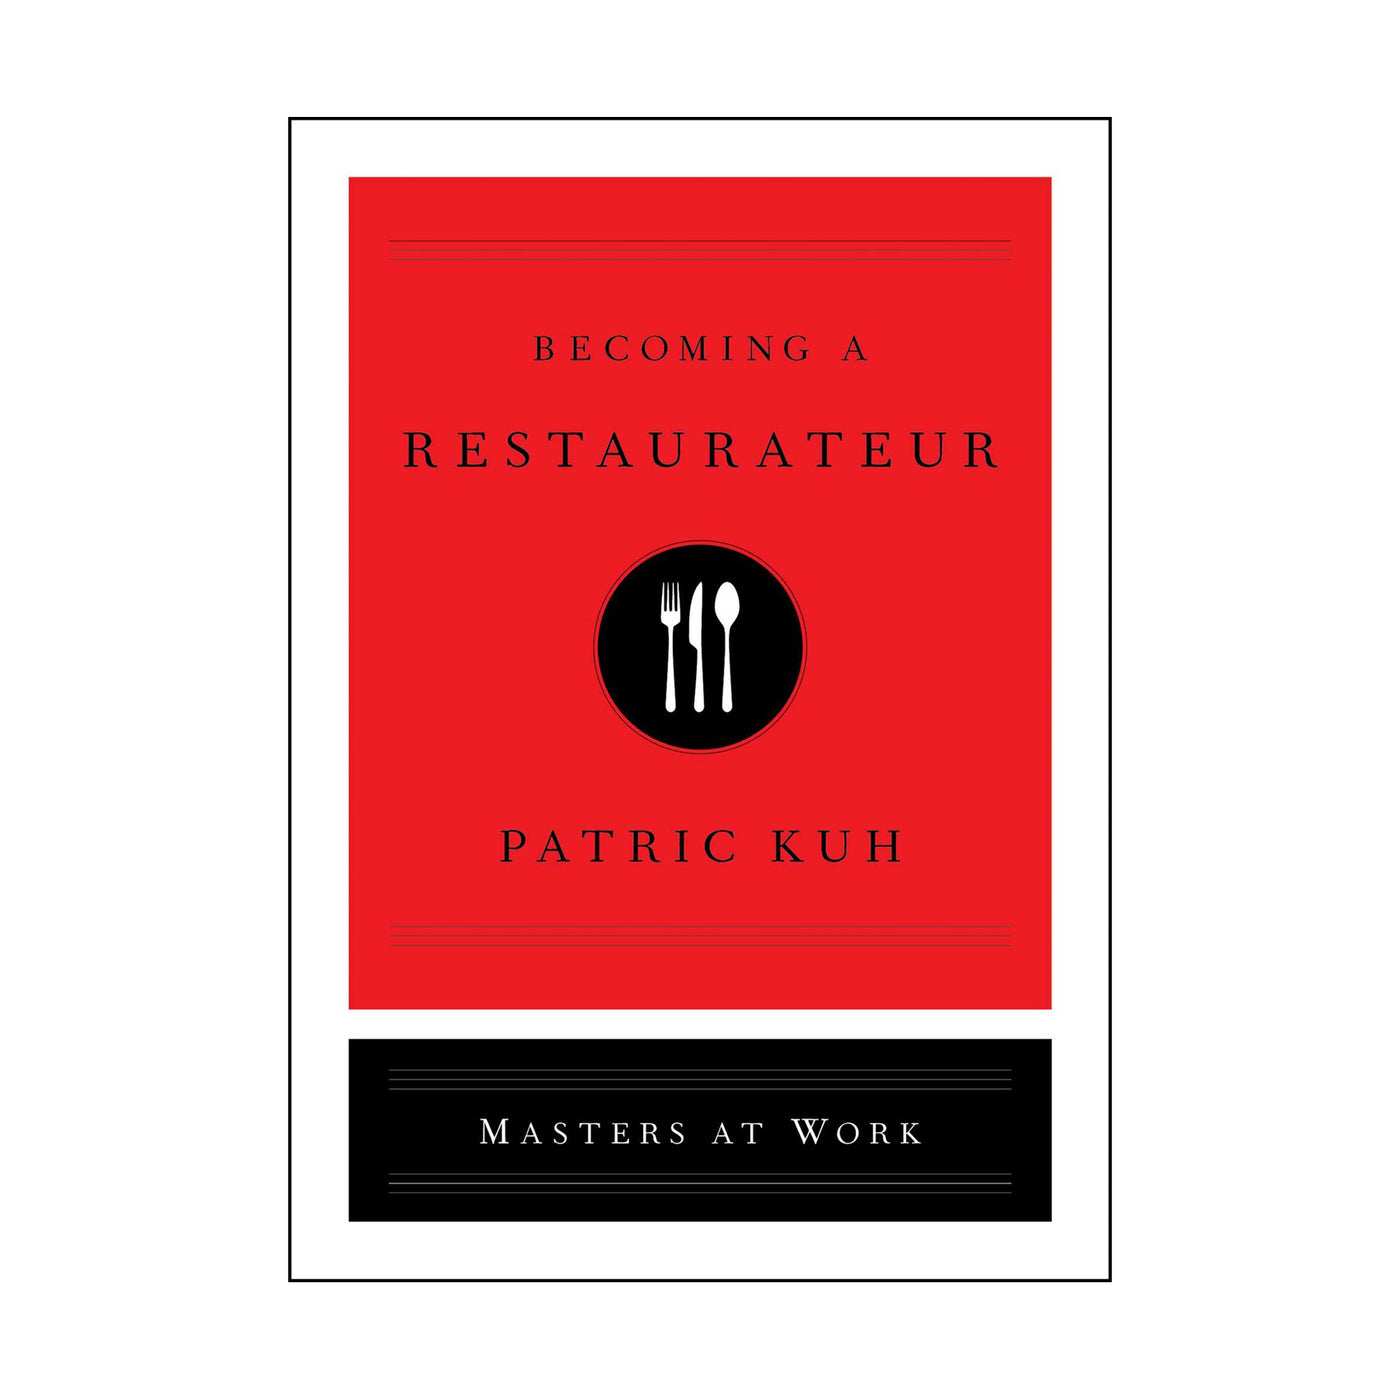 Becoming a Restauranteur